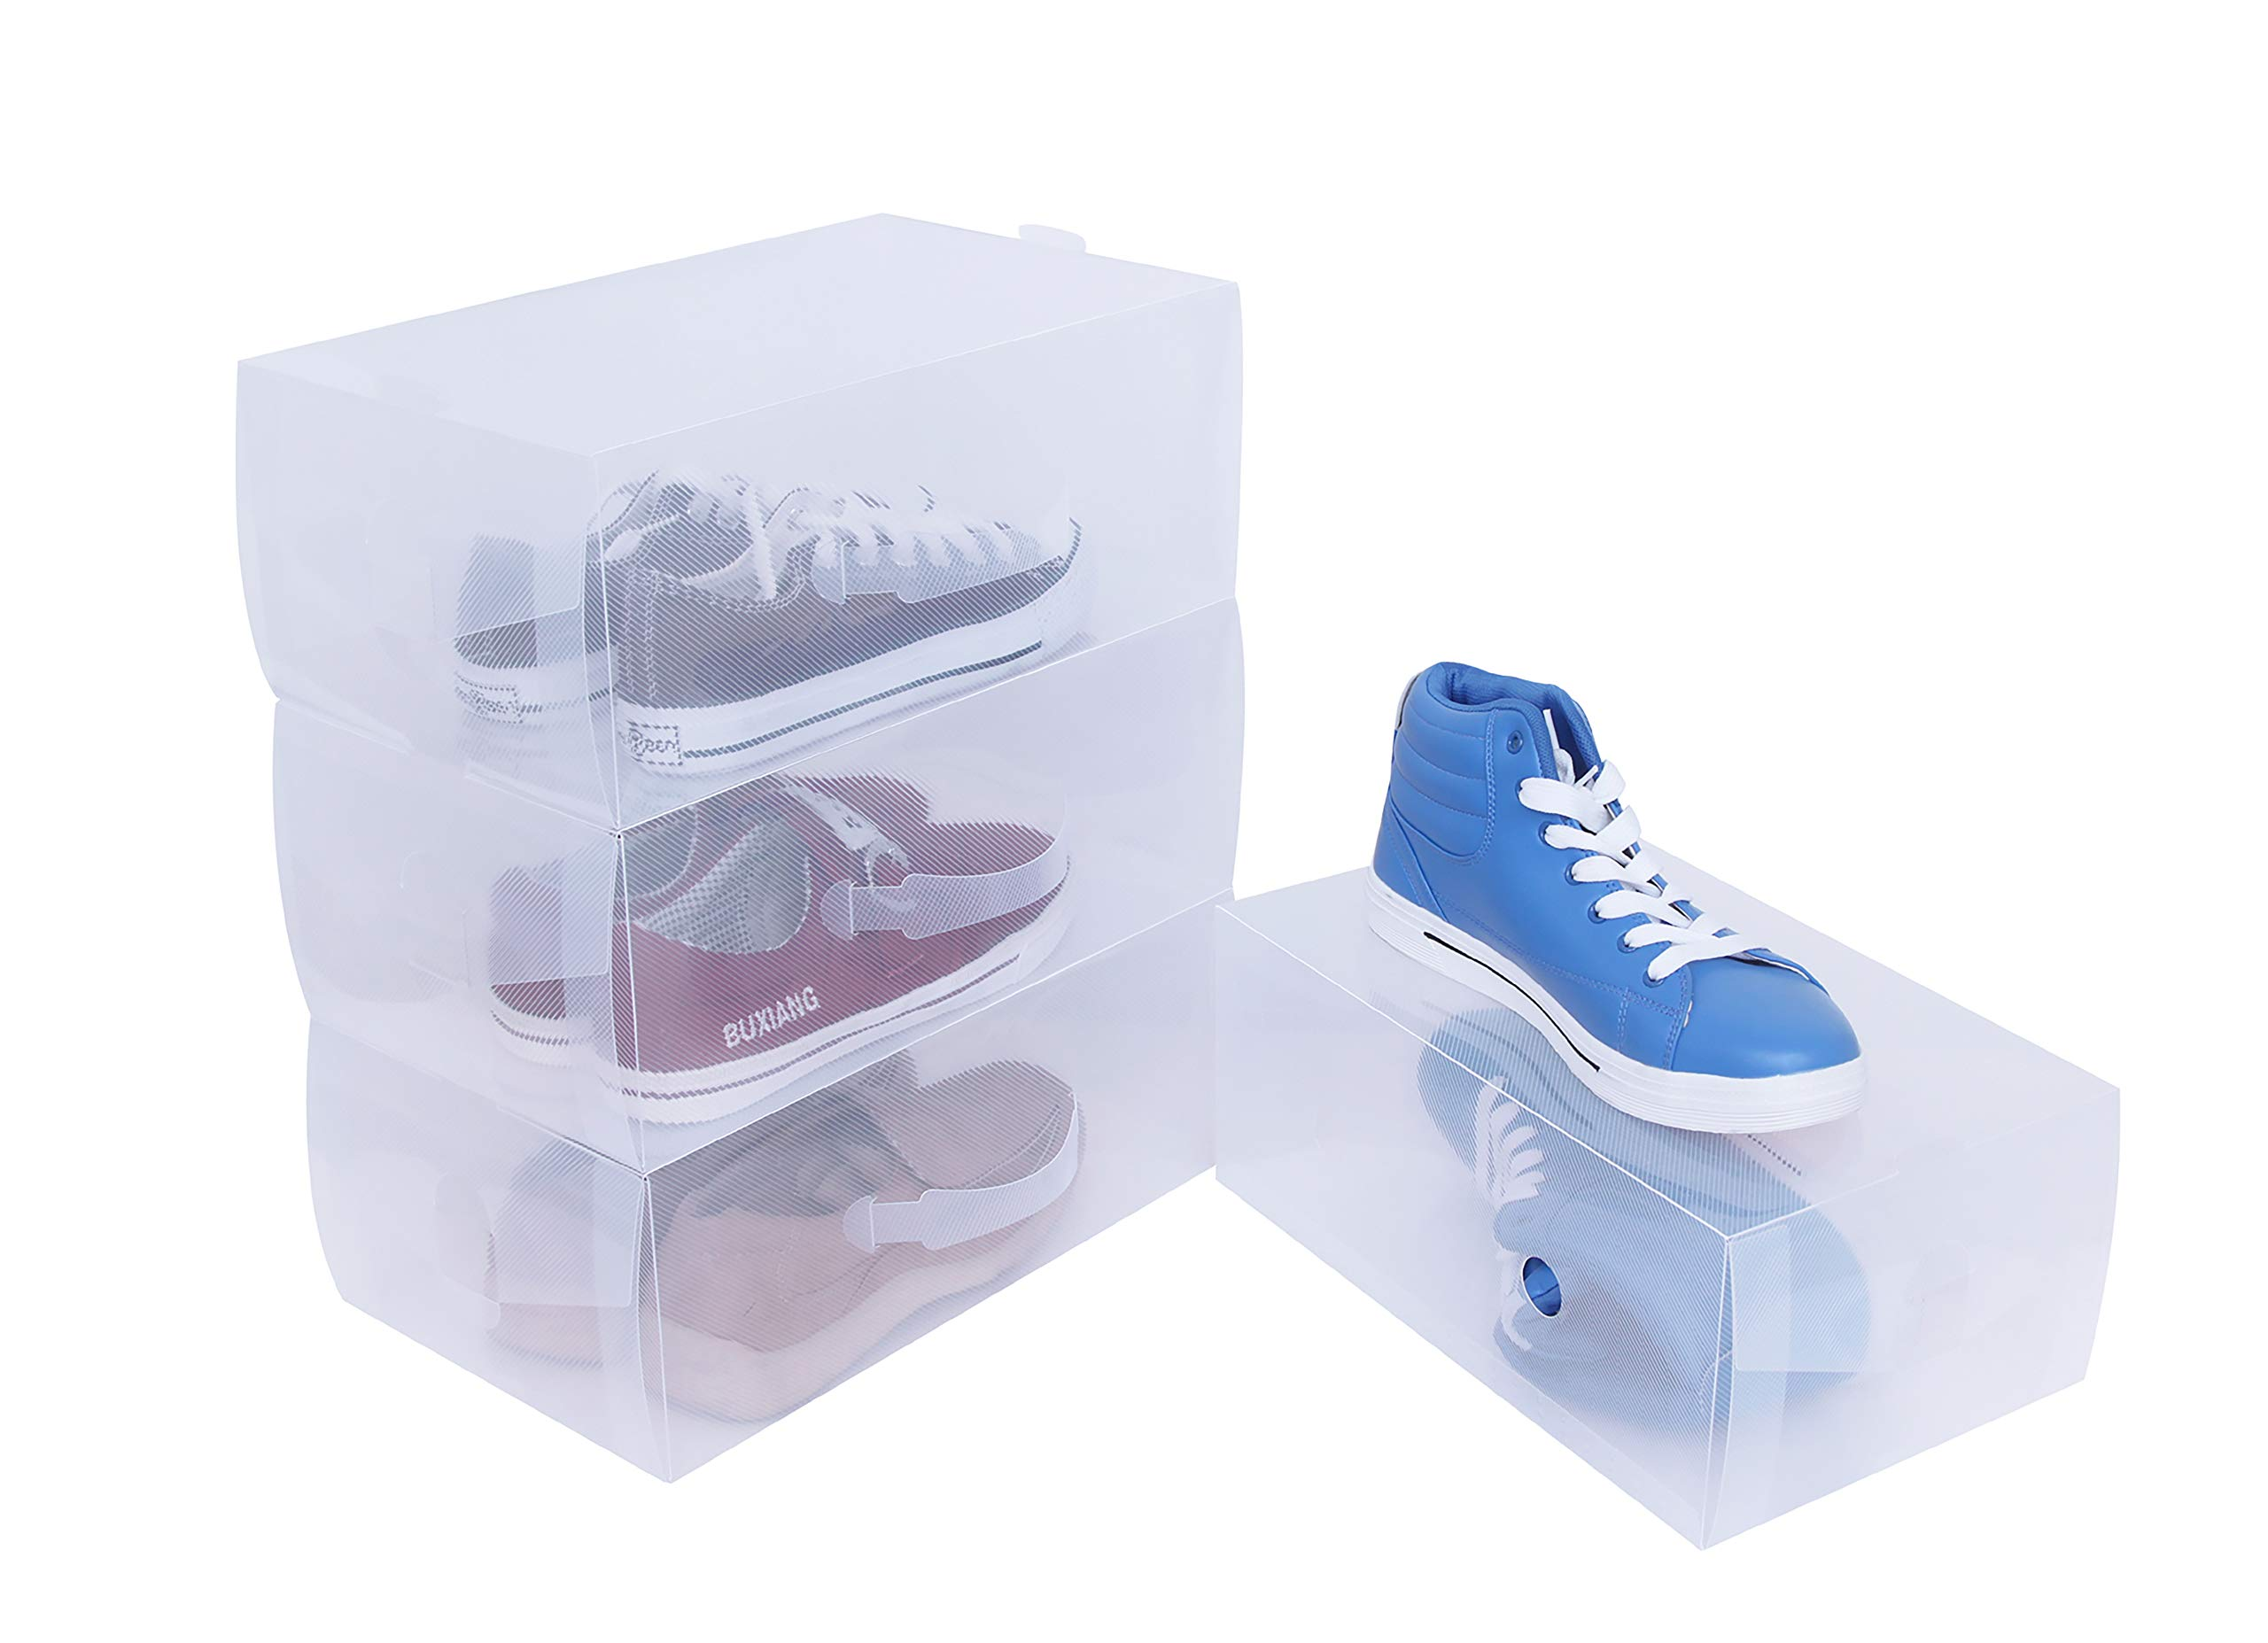 ITIDY Shoe-Box,Women and Men Shoe Storage Boxes with Handles for Easy Carrying,Plastic Foldable Stackable Shoe Storage Container,Closet Shelf Shoe Organizer,Pack of 4,Clear